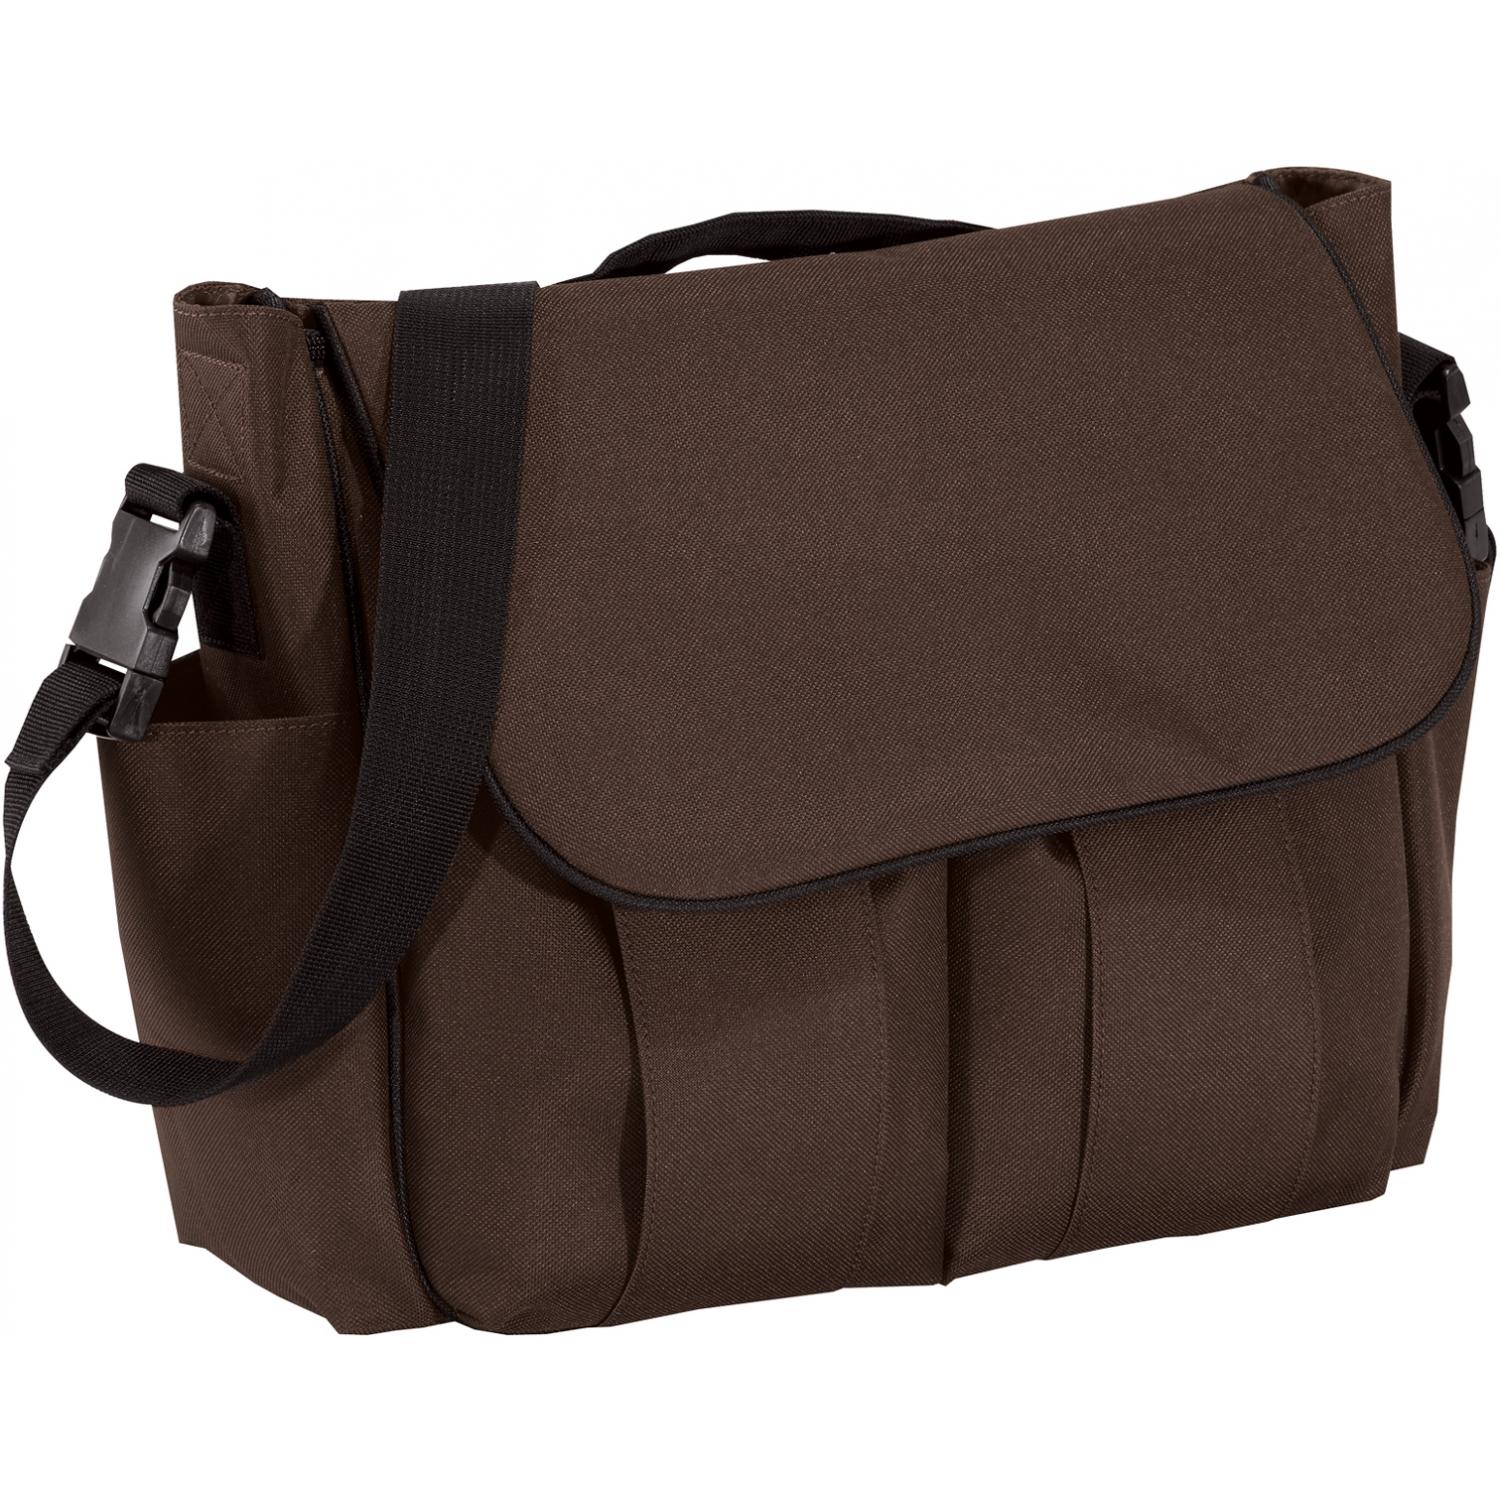 Precious Cargo Diaper Bag - Chestnut Brown